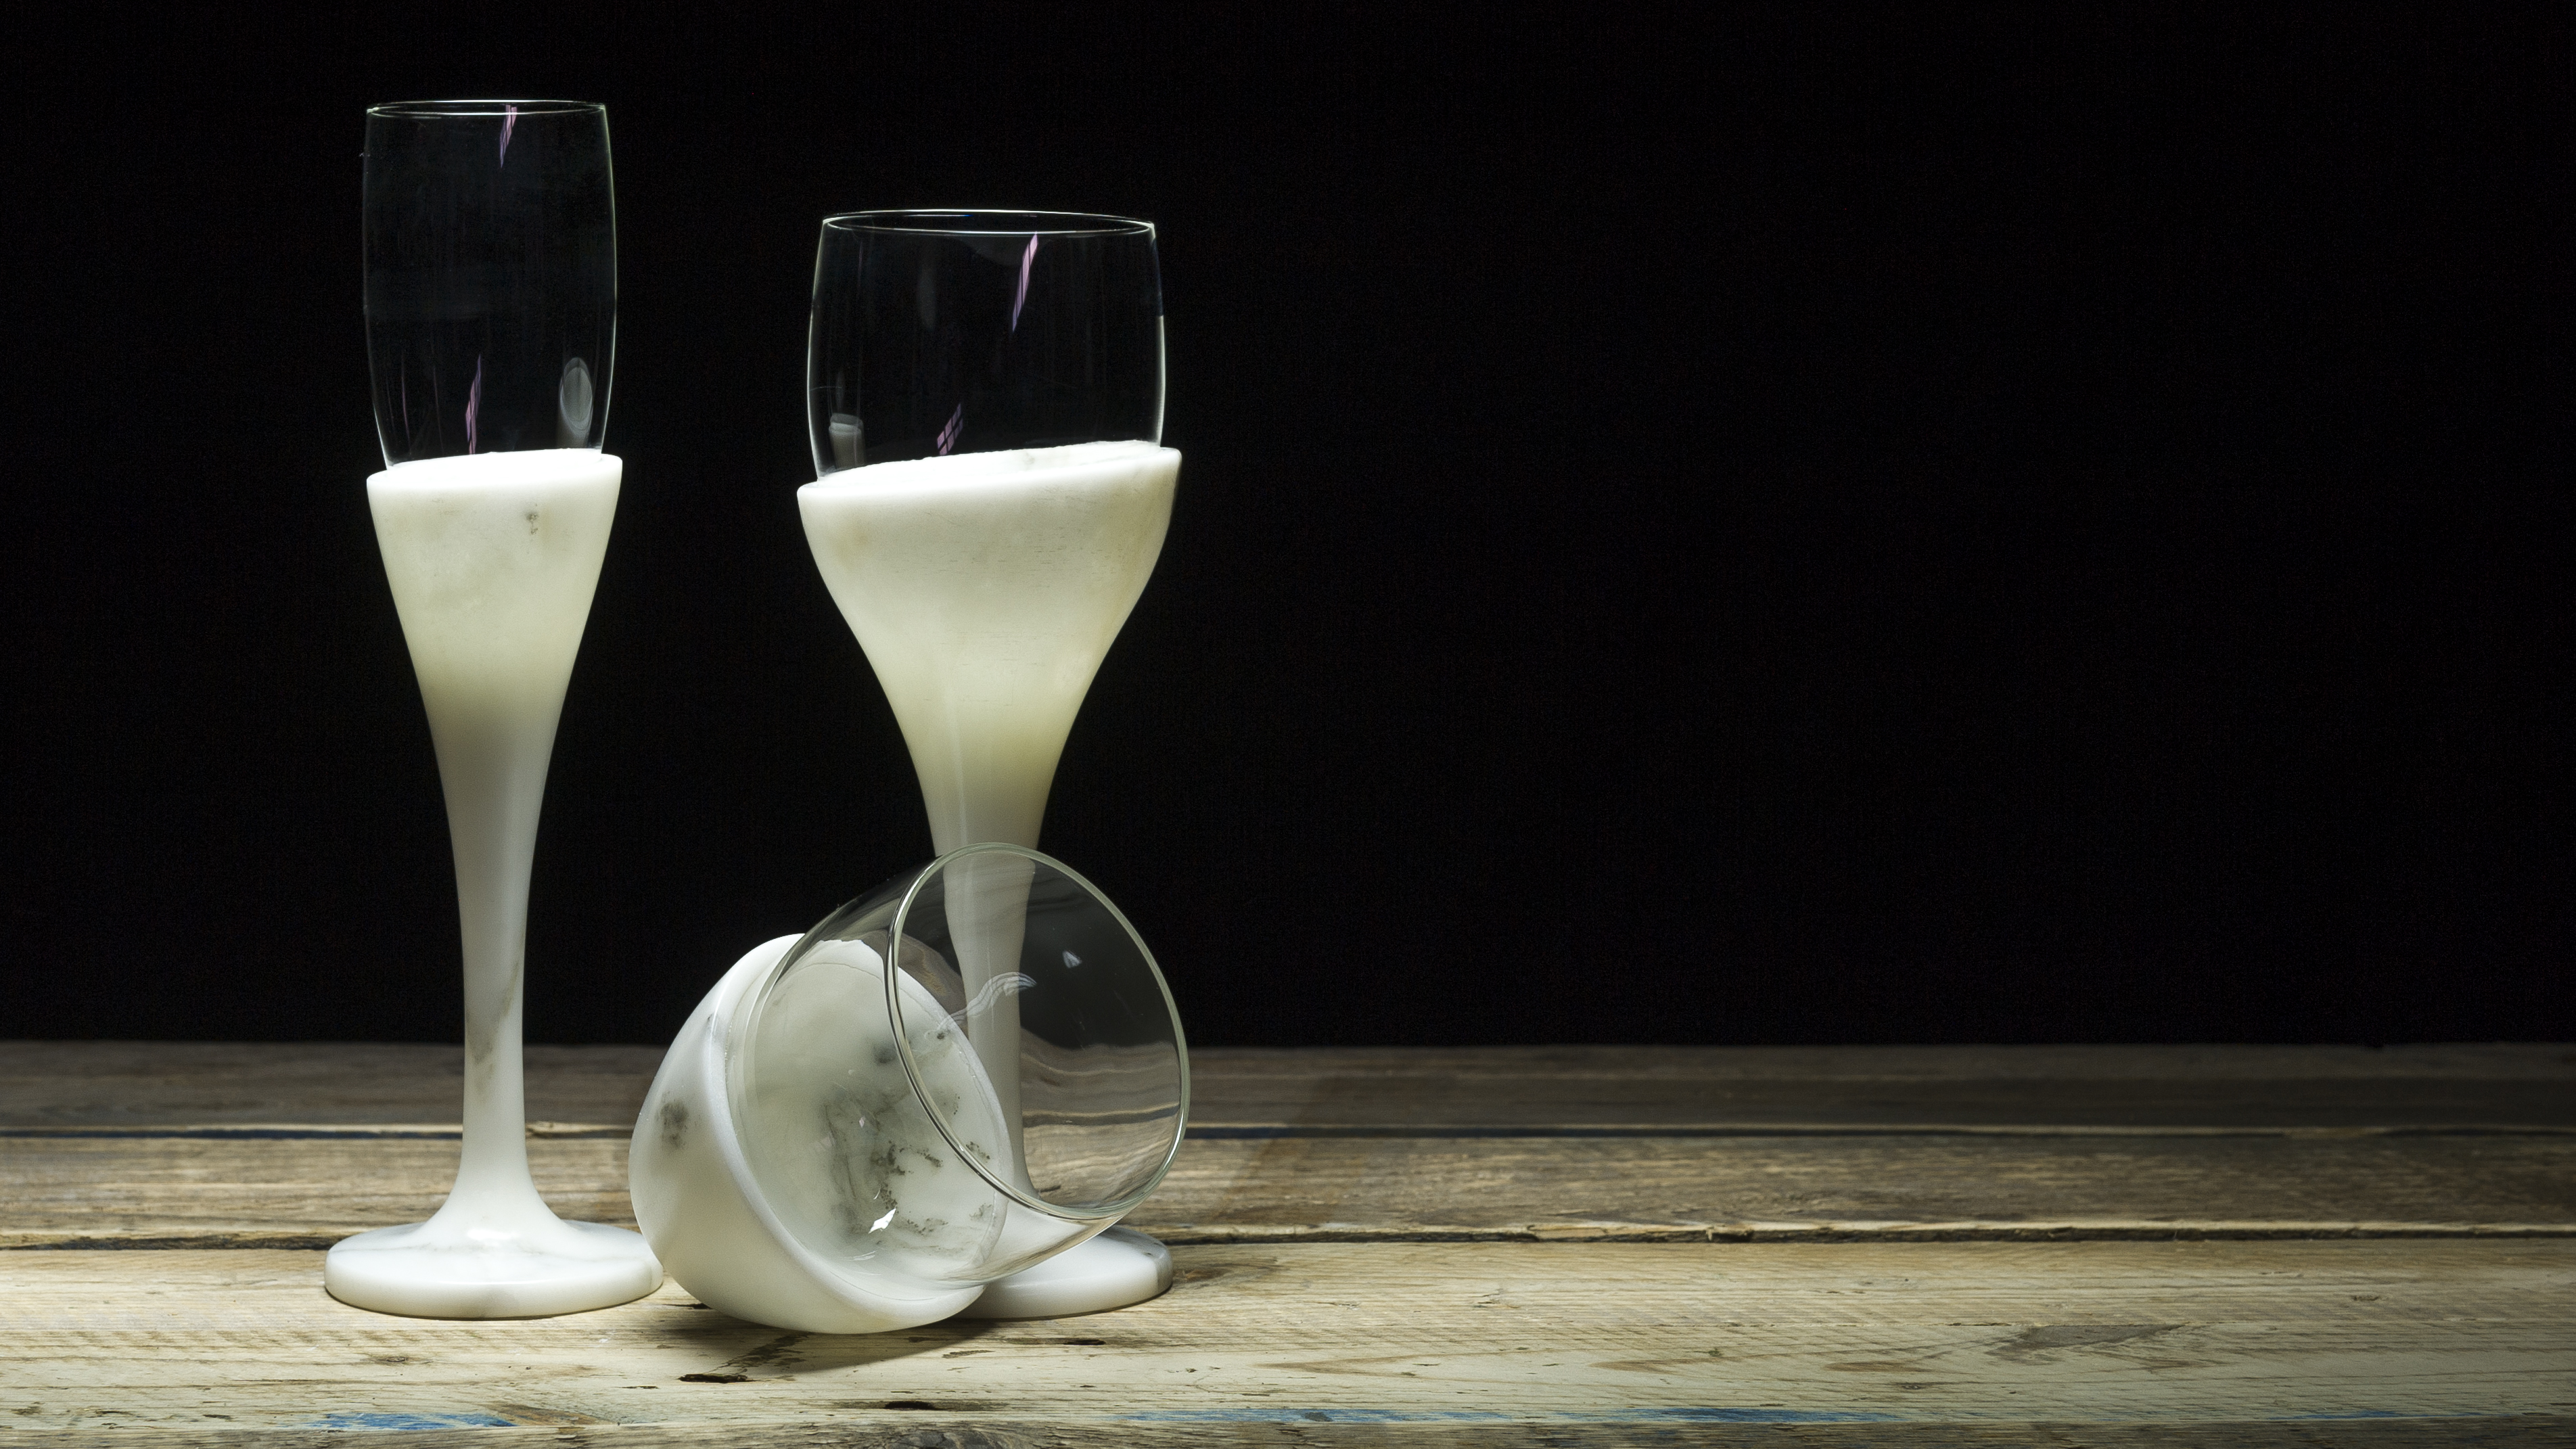 stonecycle, the uniqueness of Carrara marble through the 5 senses. marble plates and glasses